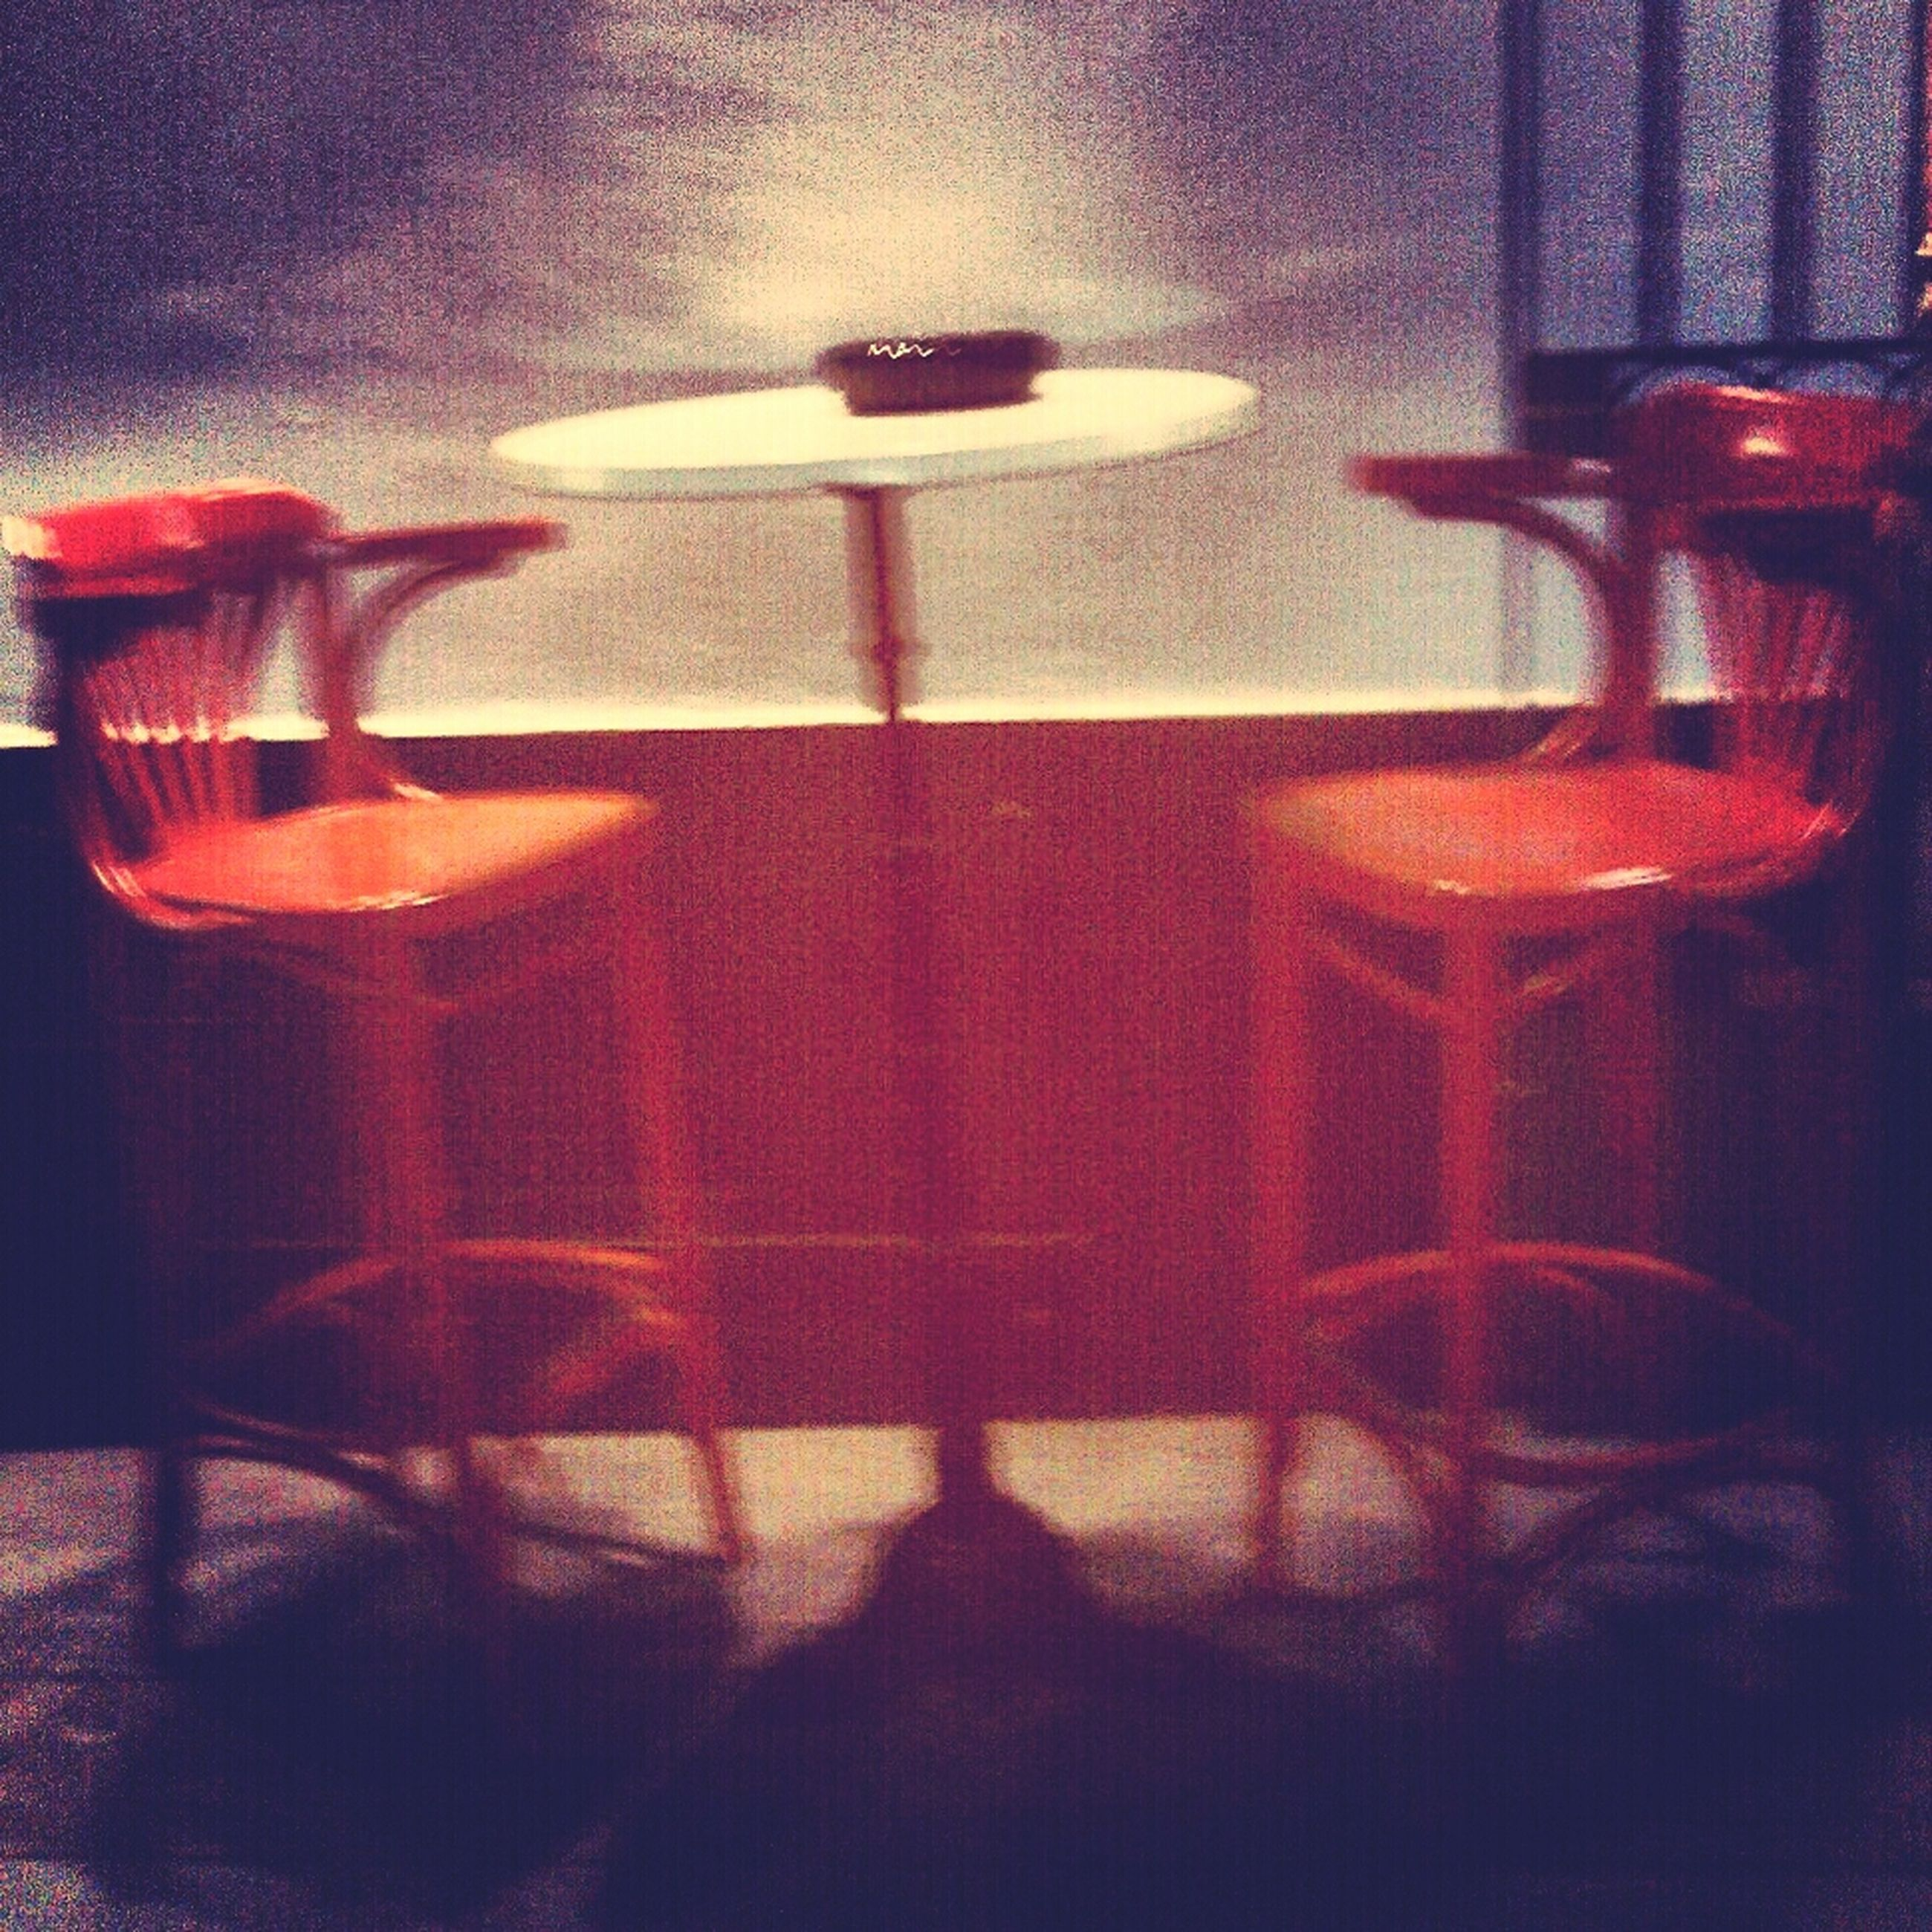 indoors, illuminated, home interior, lighting equipment, wall - building feature, red, absence, light - natural phenomenon, window, no people, empty, chair, reflection, domestic room, room, curtain, dark, night, electricity, electric lamp